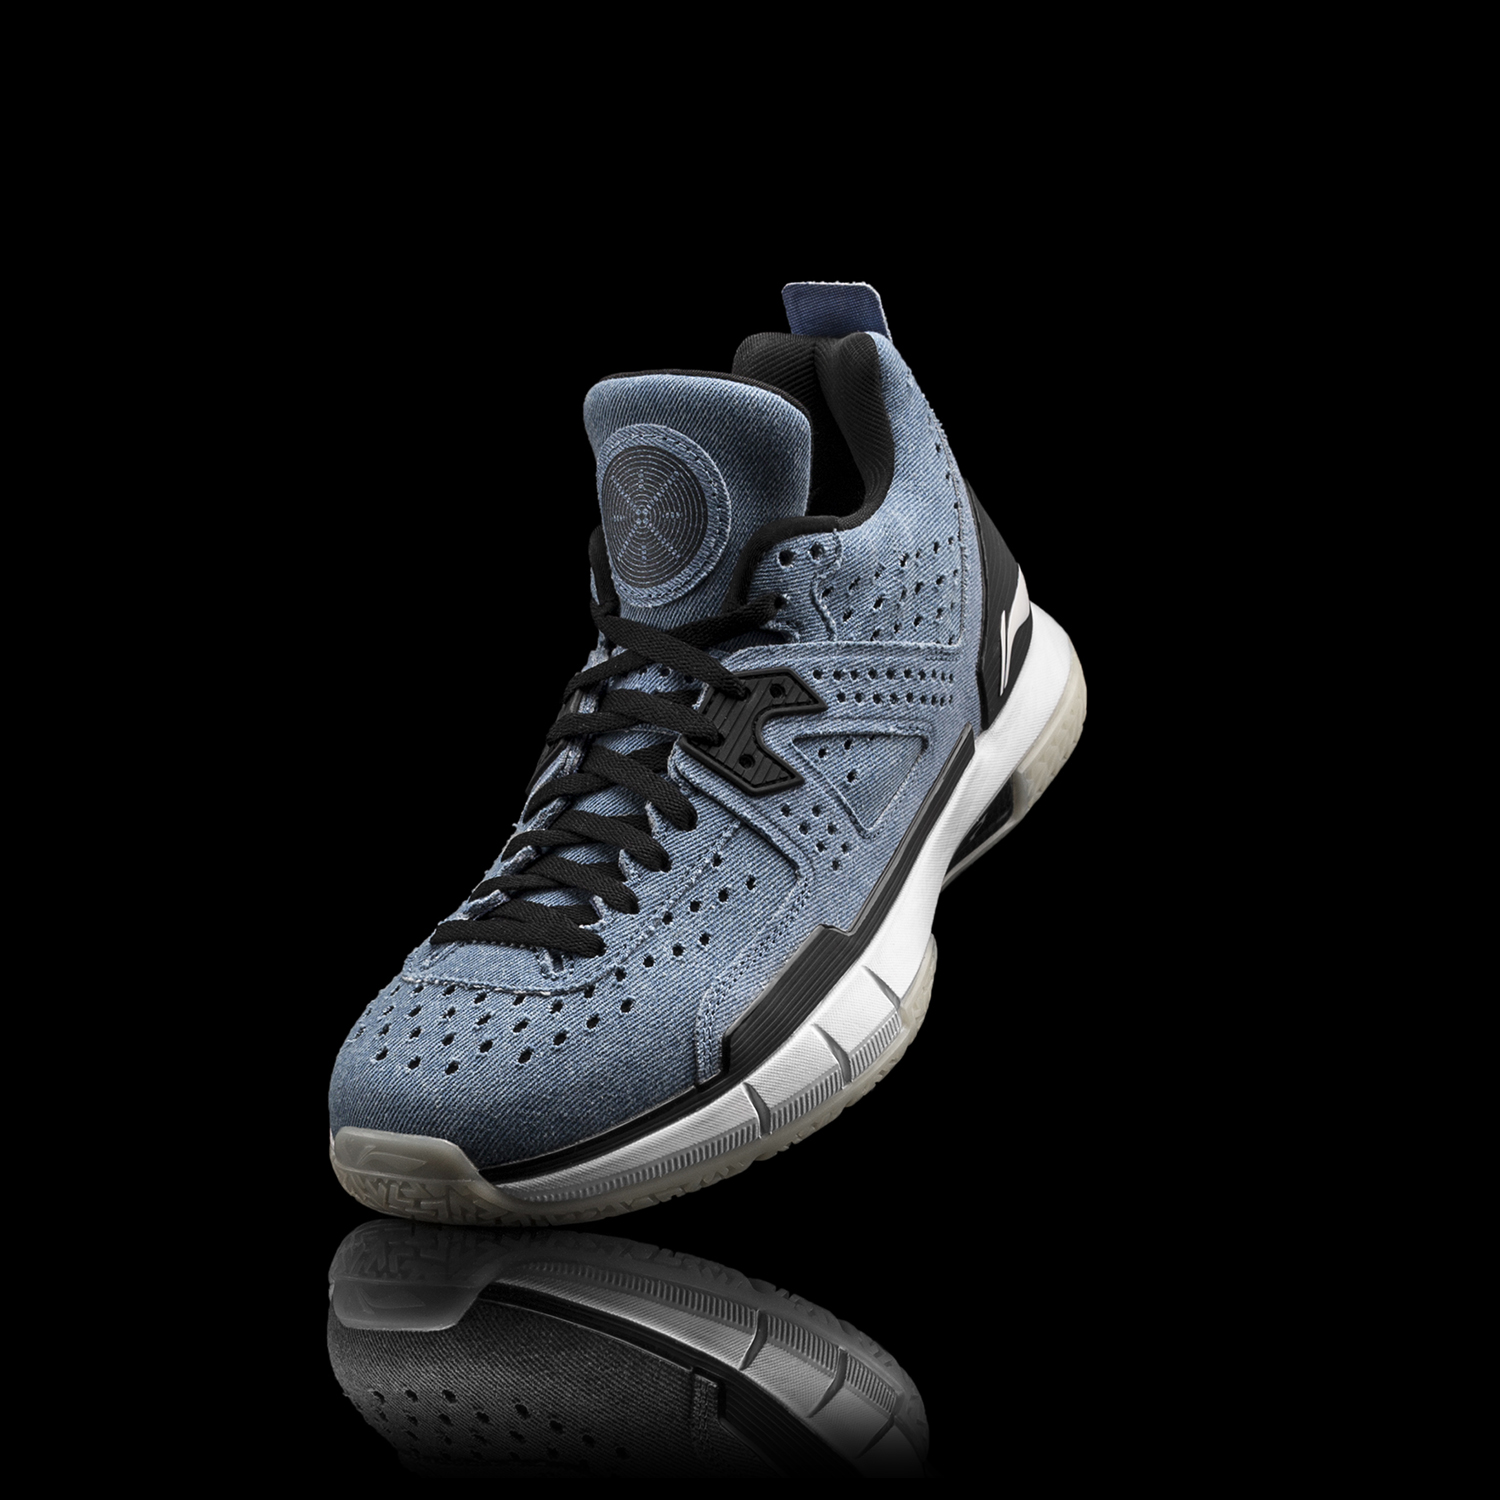 Li-Ning Men WOW 5 Denim Professional Basketball Shoes LiNing Cloud Bounse + wow5 Sneakers Way of Wade Sport Shoes ABAM057 XYL099 18